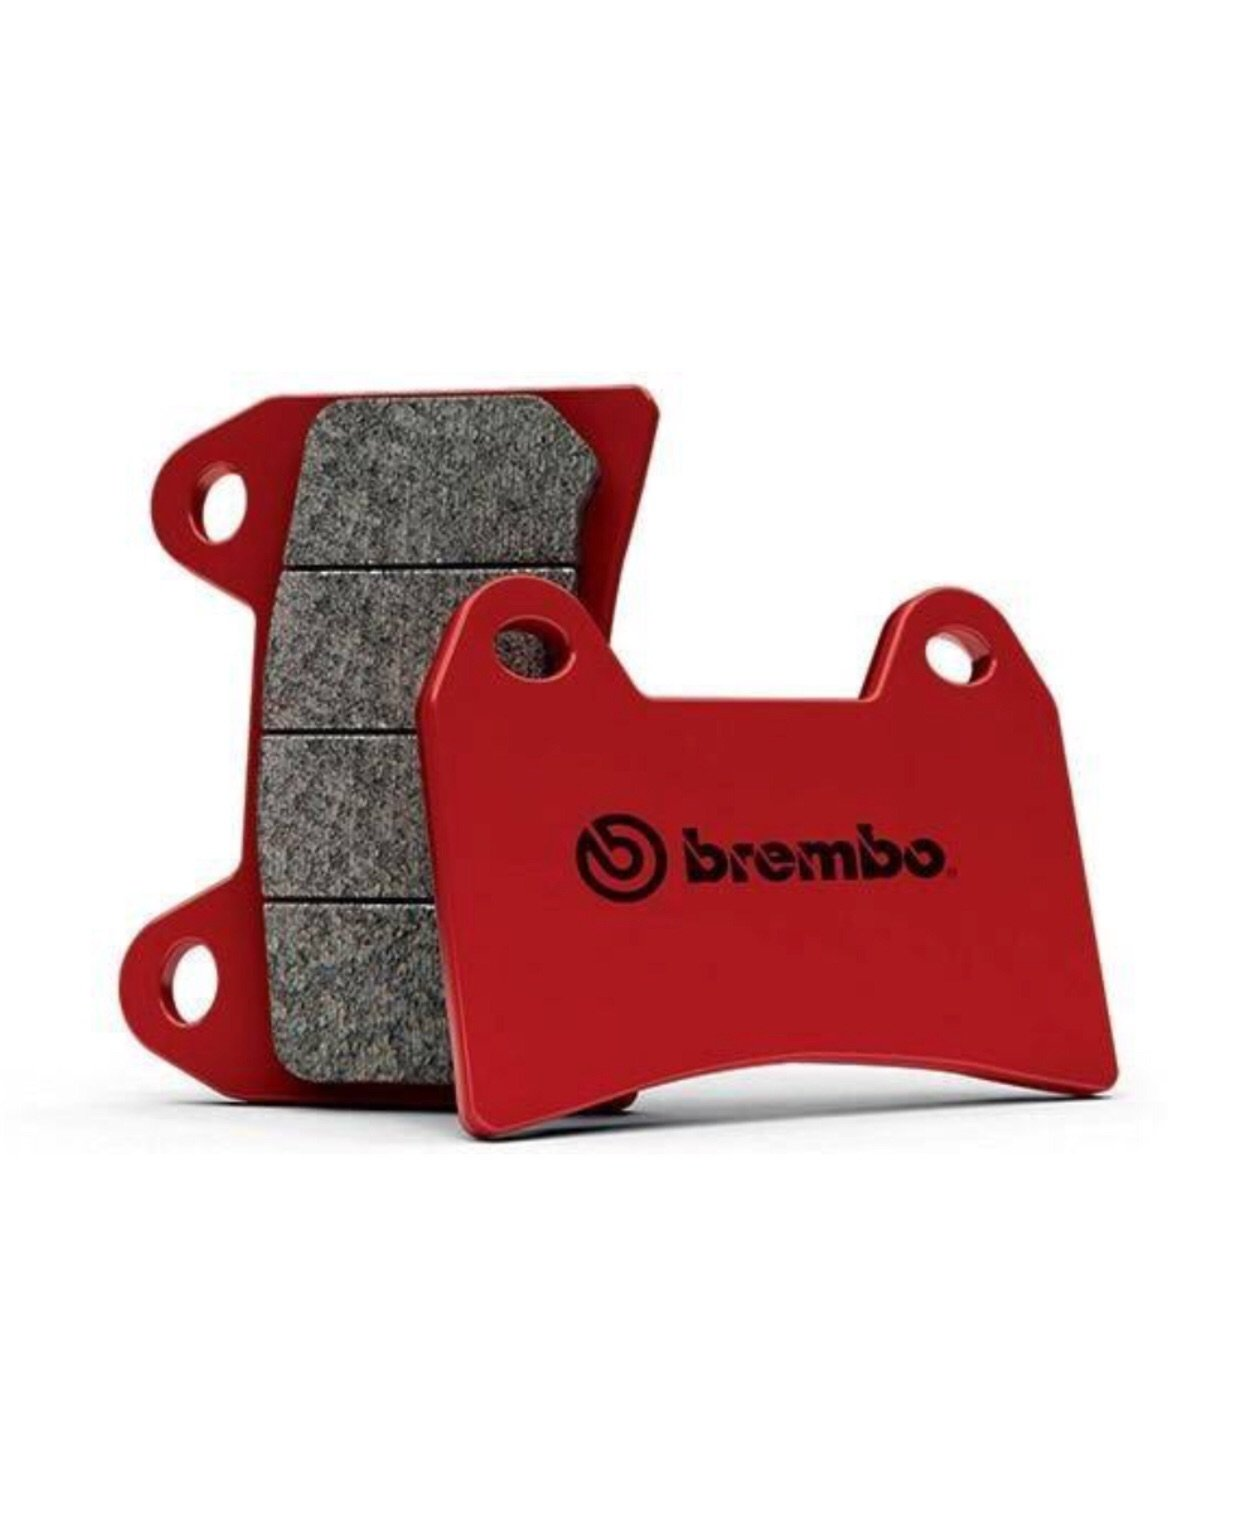 Brake Pads - Triumph, Brake Pads, Brembo - Race and Trackday Parts